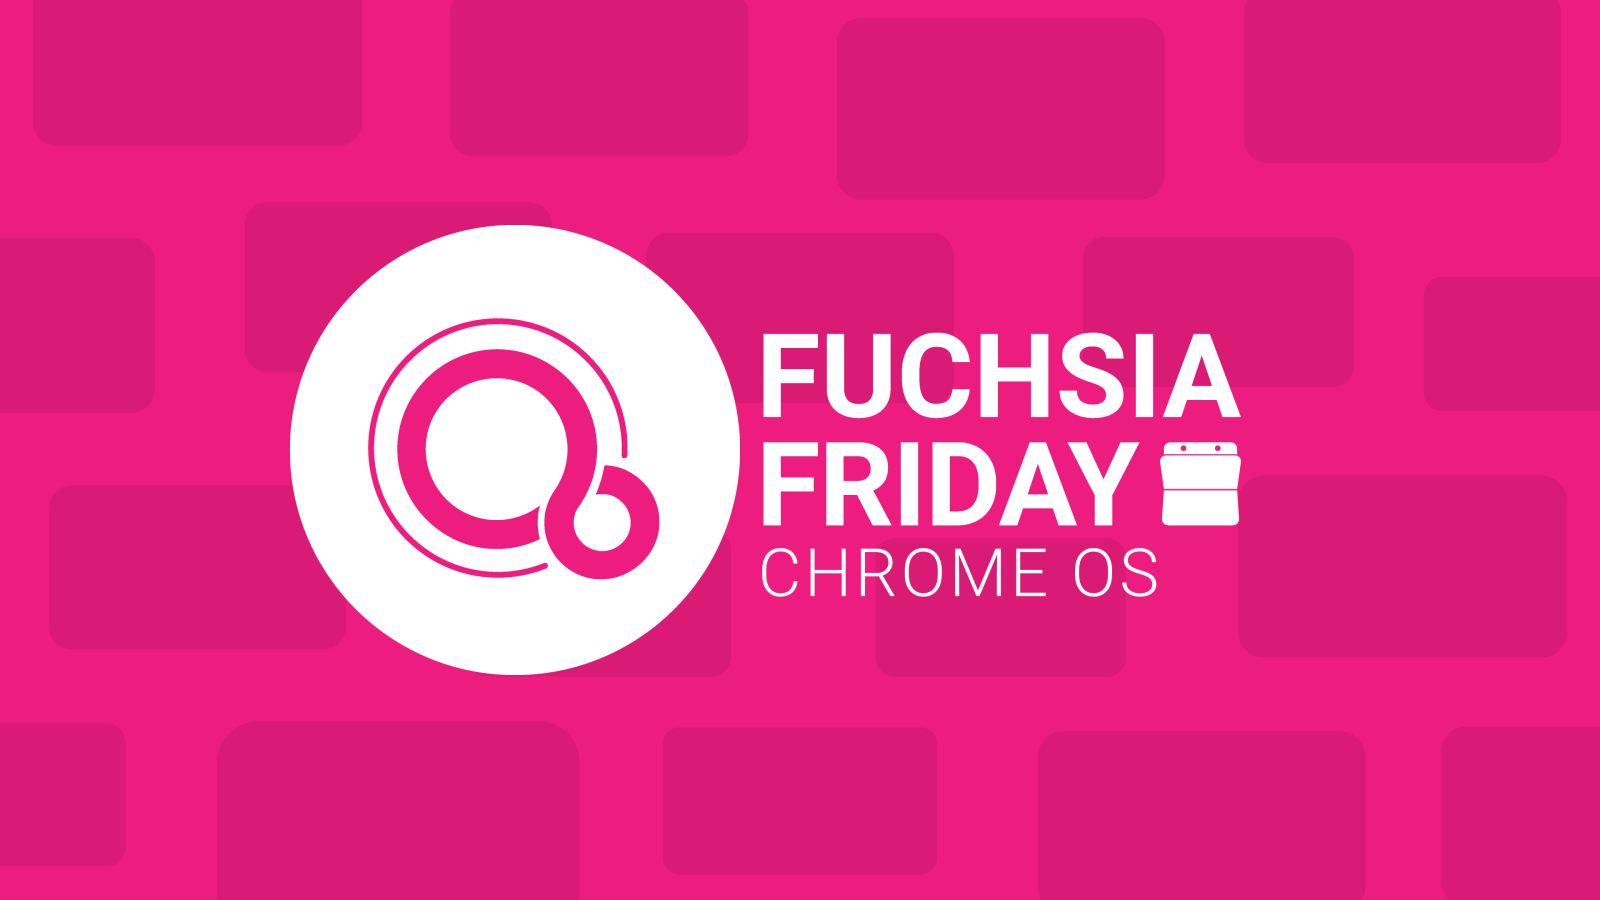 Fuchsia Friday: Android, Linux apps, and Fuchsia's close relationship w/ Chrome OS